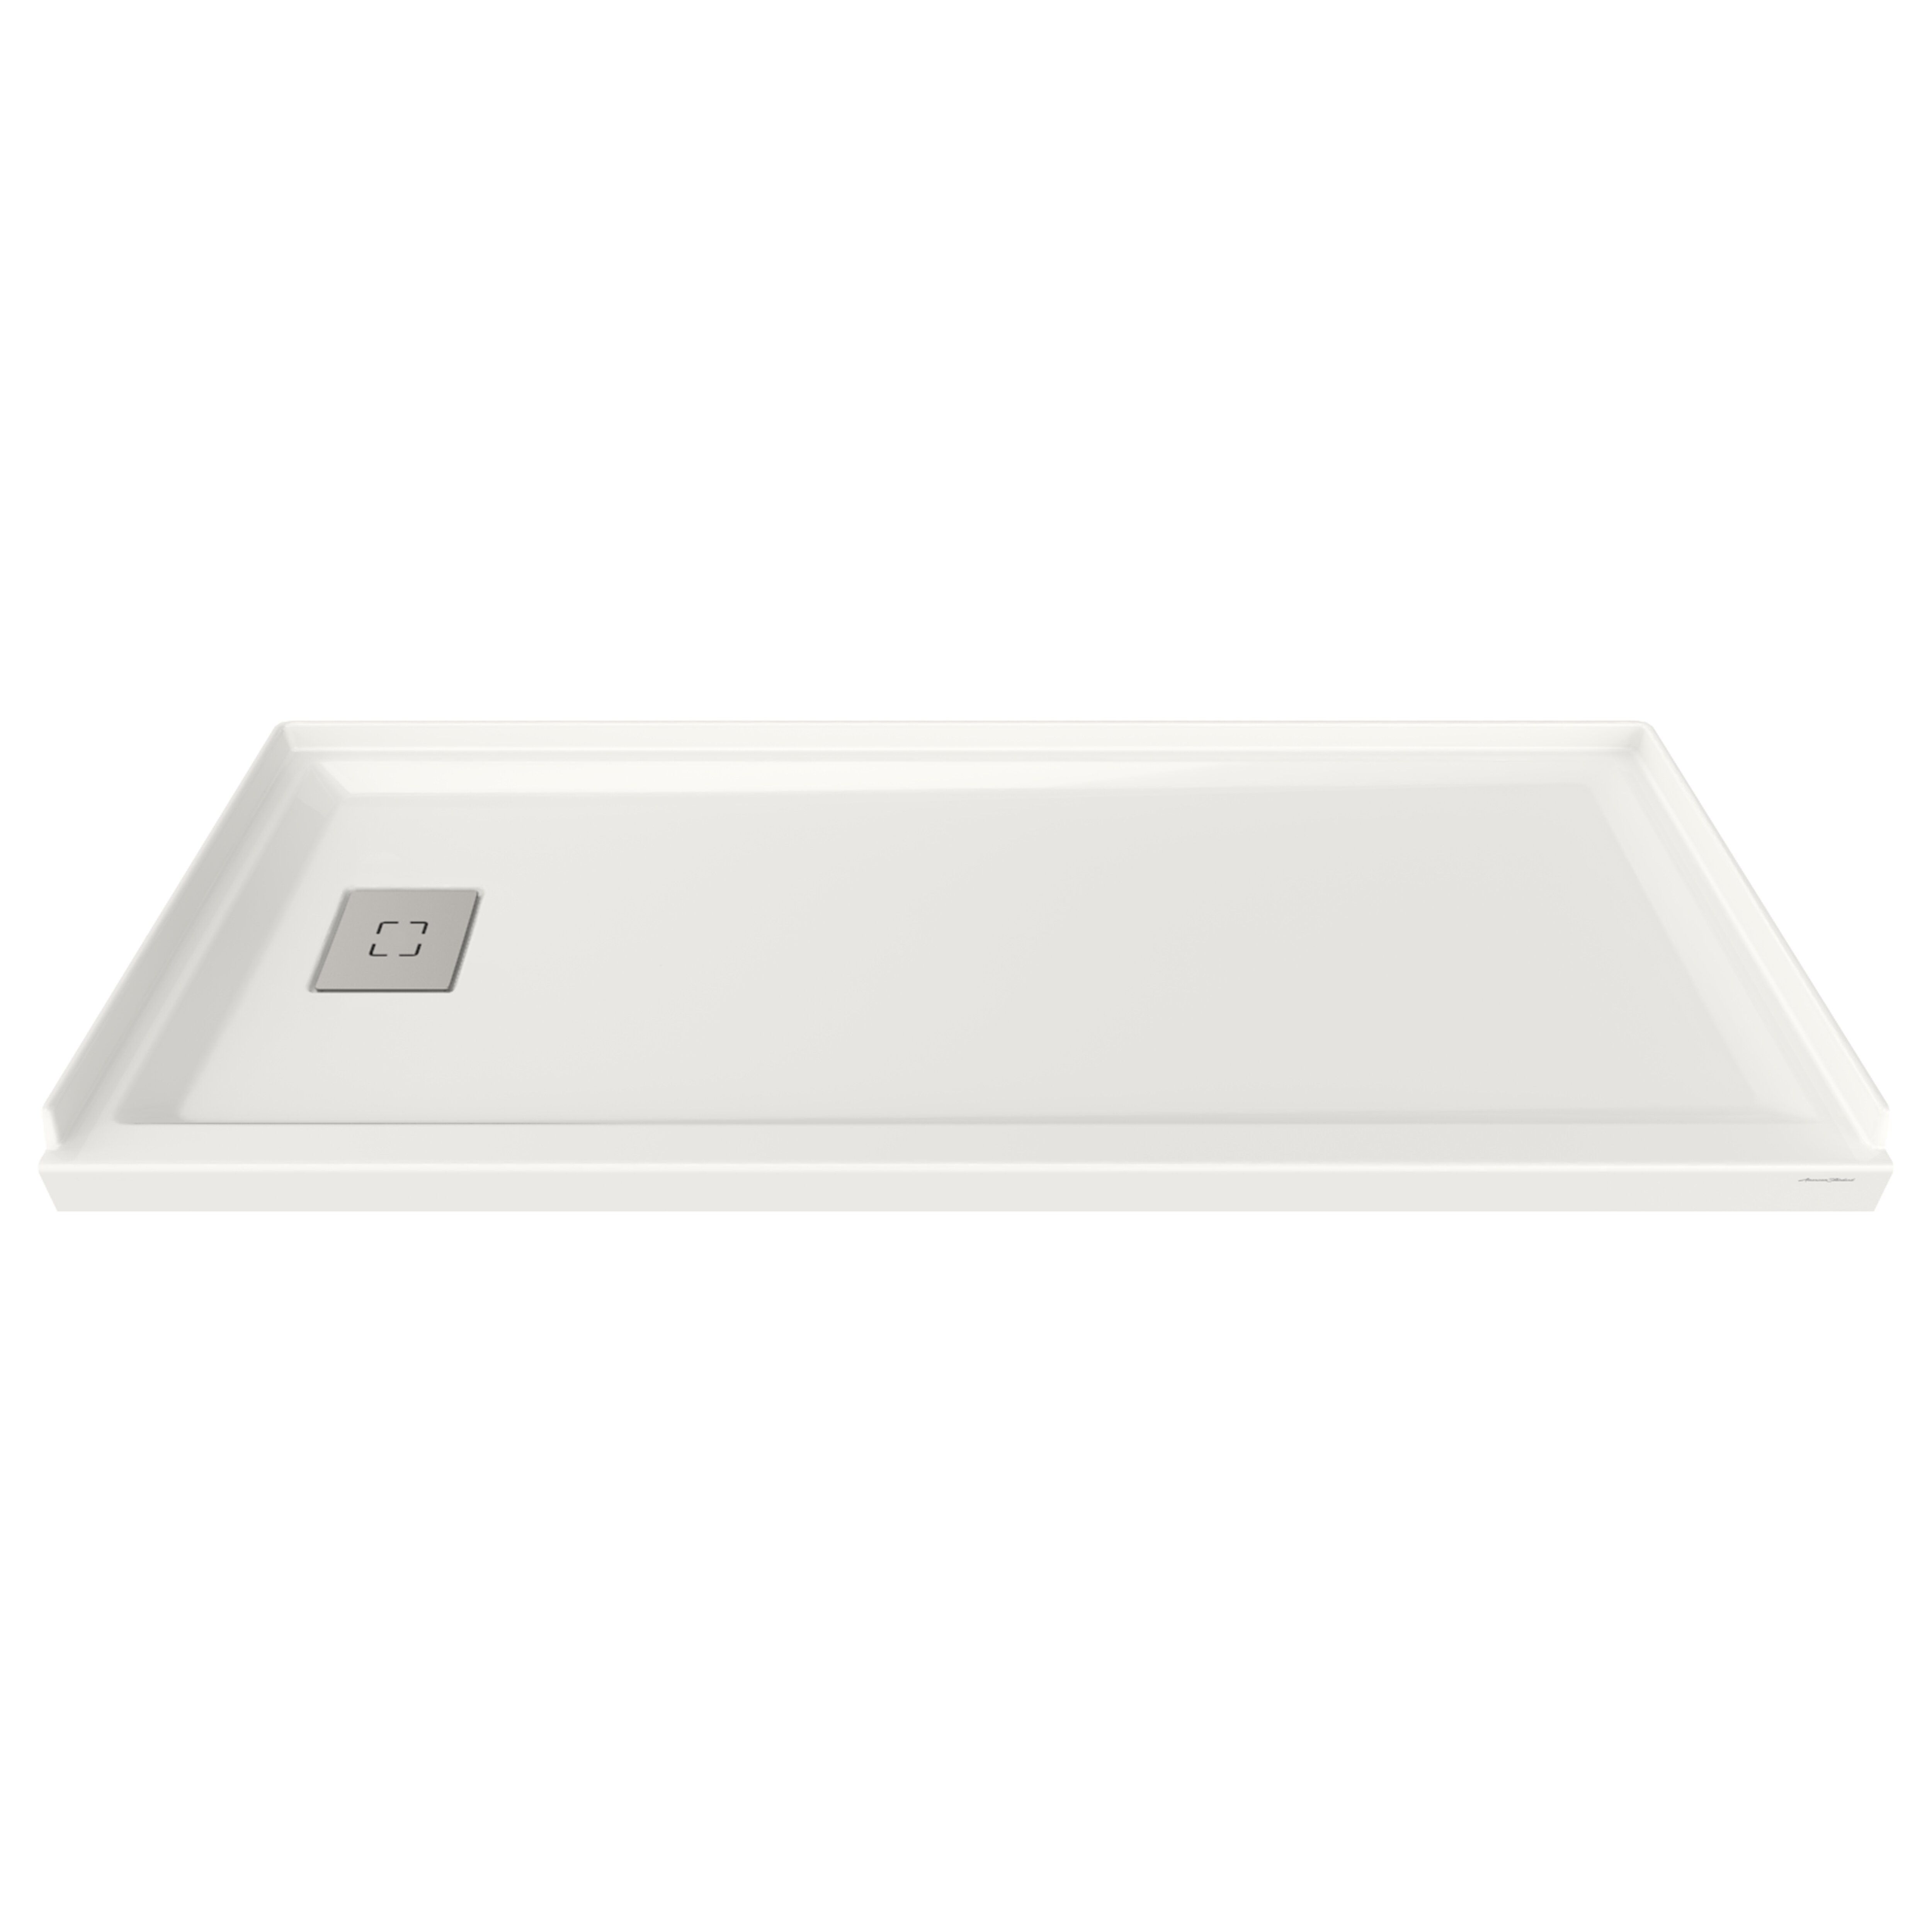 Find The Perfect Left Shower Bases Pans Wayfair With Images Shower Base Acrylic Shower Base Shower Wall Kits